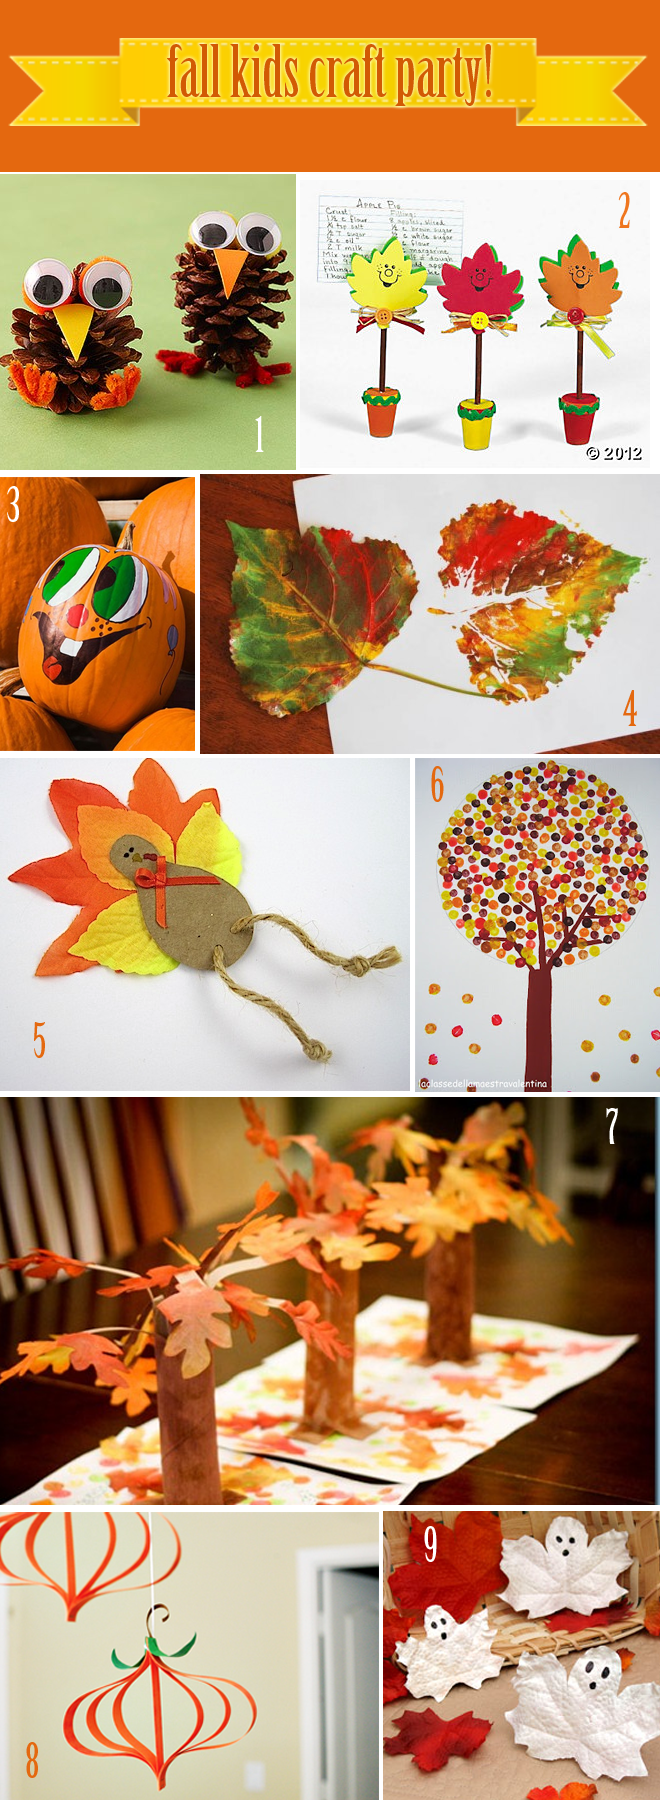 Harvest Craft Ideas For Kids Part - 16: Fall Kids Craft Party Ideas -- Fun For Them To Do While The Turkey Is